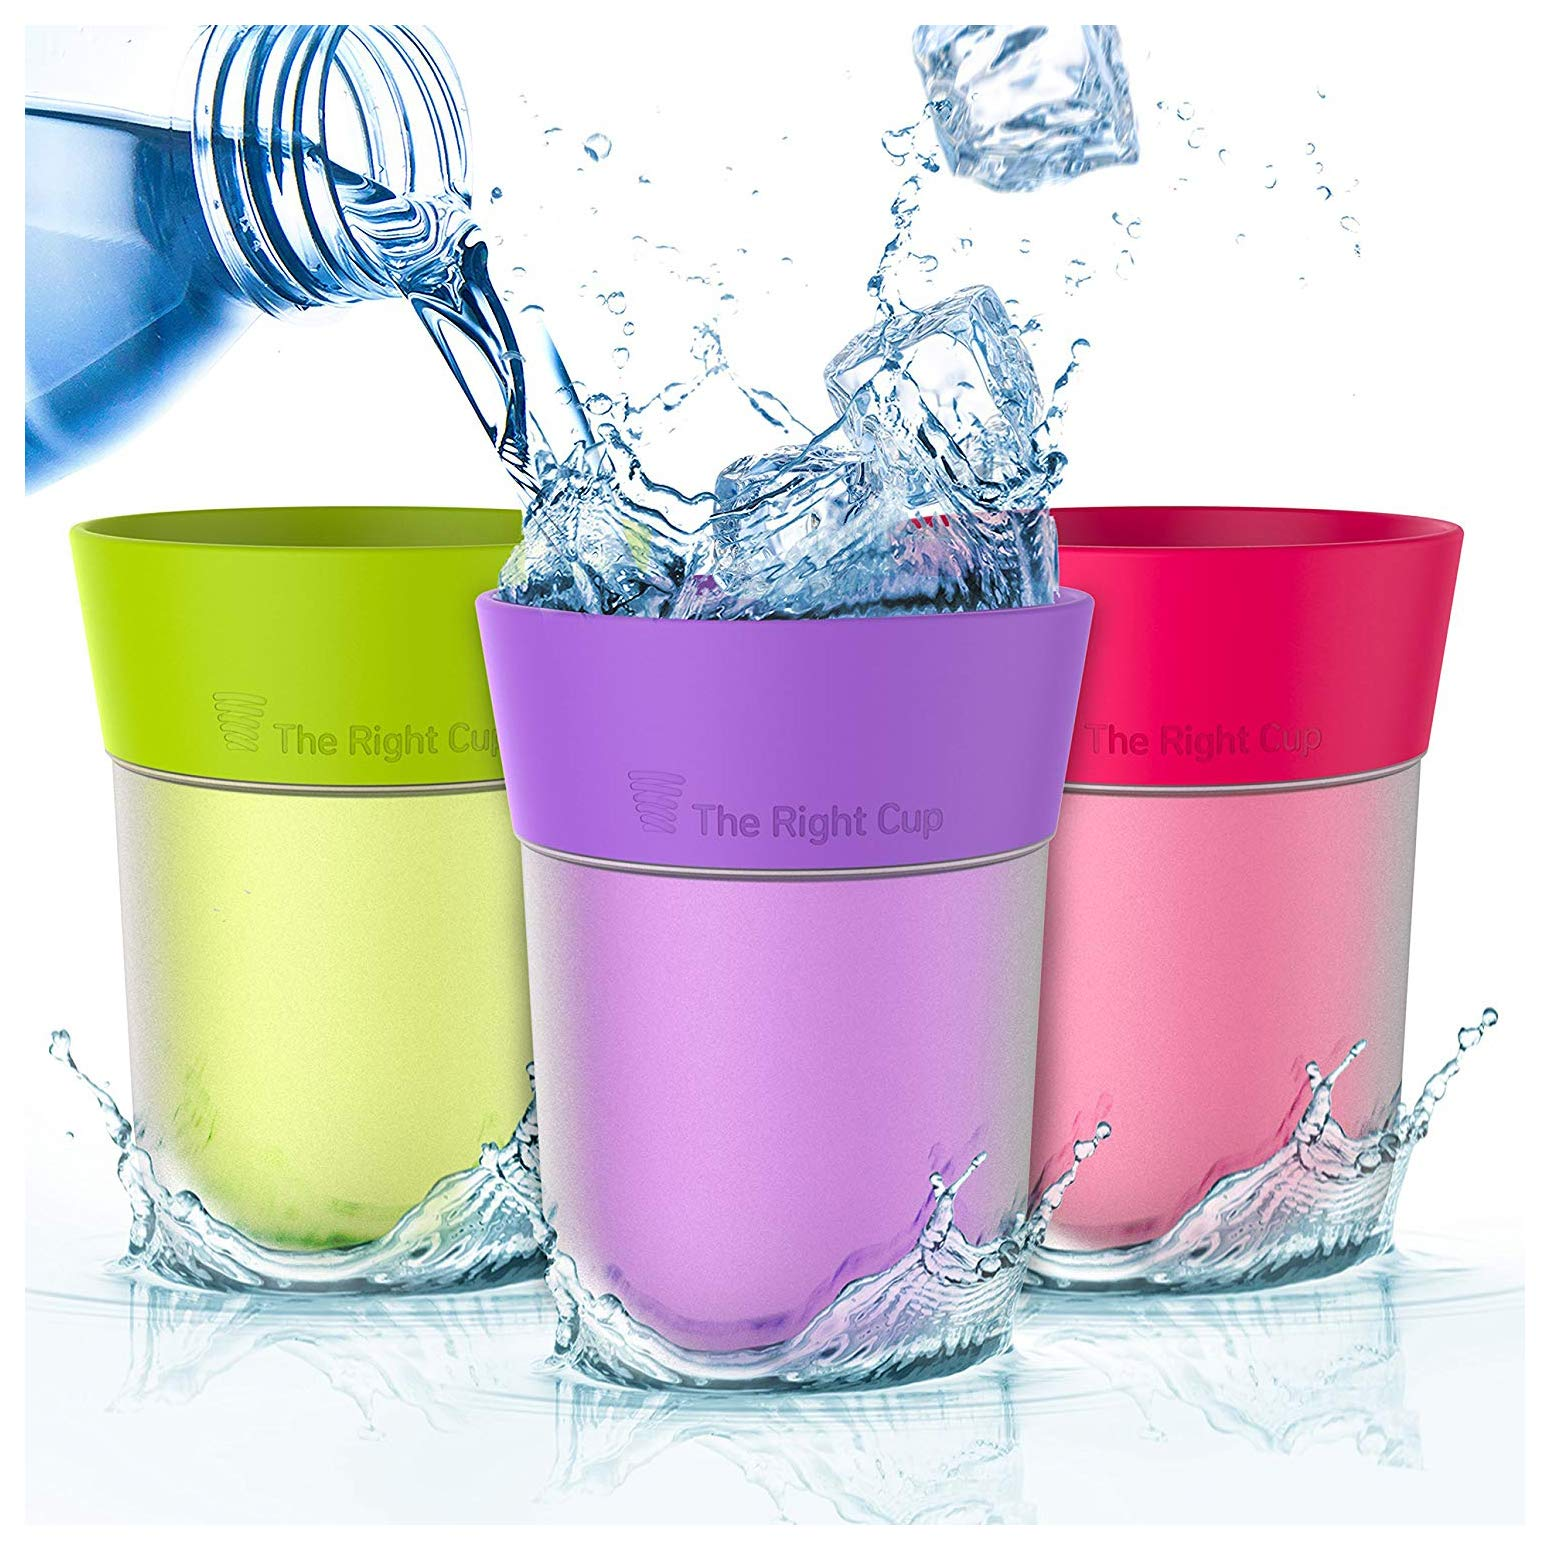 Flavored Water cup   Drink aromatic water and fewer beverages   For kids, women, men, weight loss   Kitchen gift idea   Reusable plastic   tumbler cold water   Sugar free, BPA free By The Right Cup